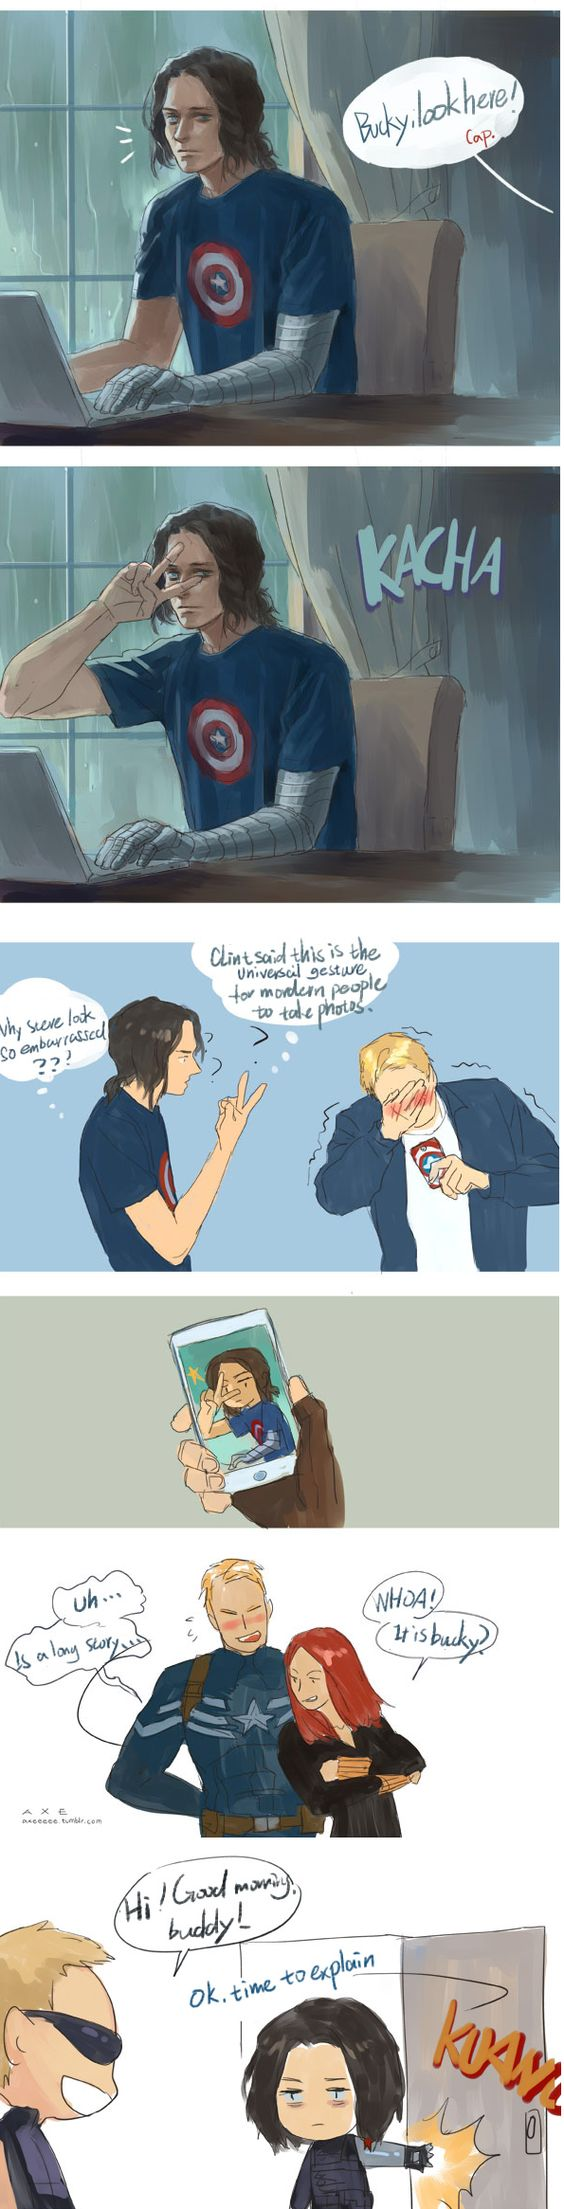 So, I'm not really sure if I got it right, but I'm guessing Bucky is so cute that it got Steve flustered?? <--Bucky posing like a 14-year-old girl would fluster anybody.